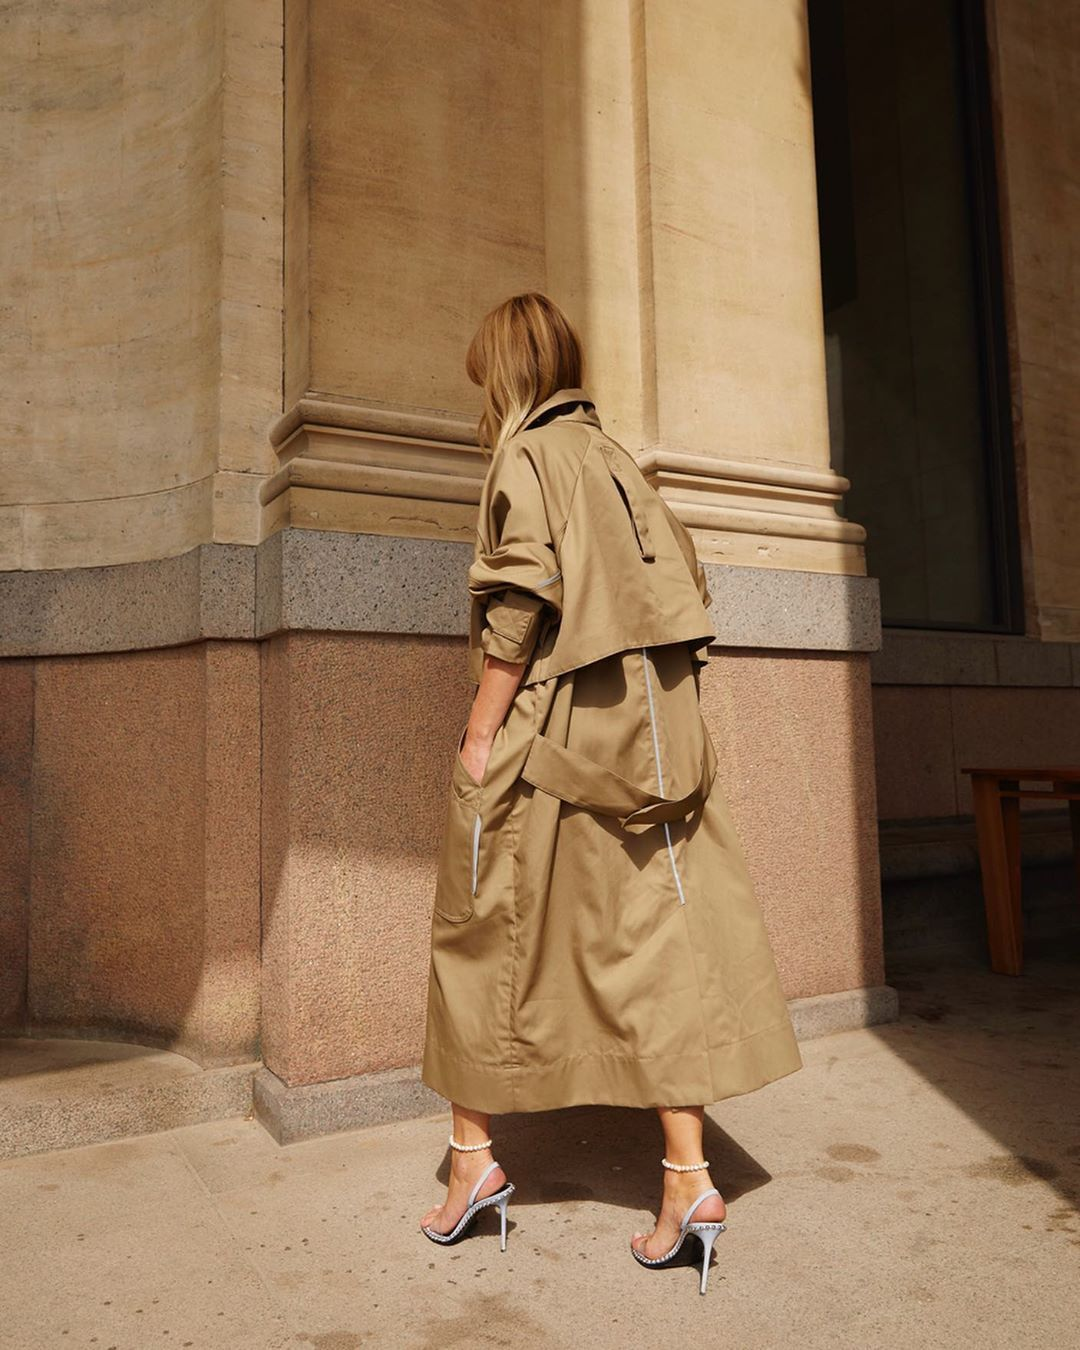 kansas-workwear-jeanette-madsen-trench-instagram